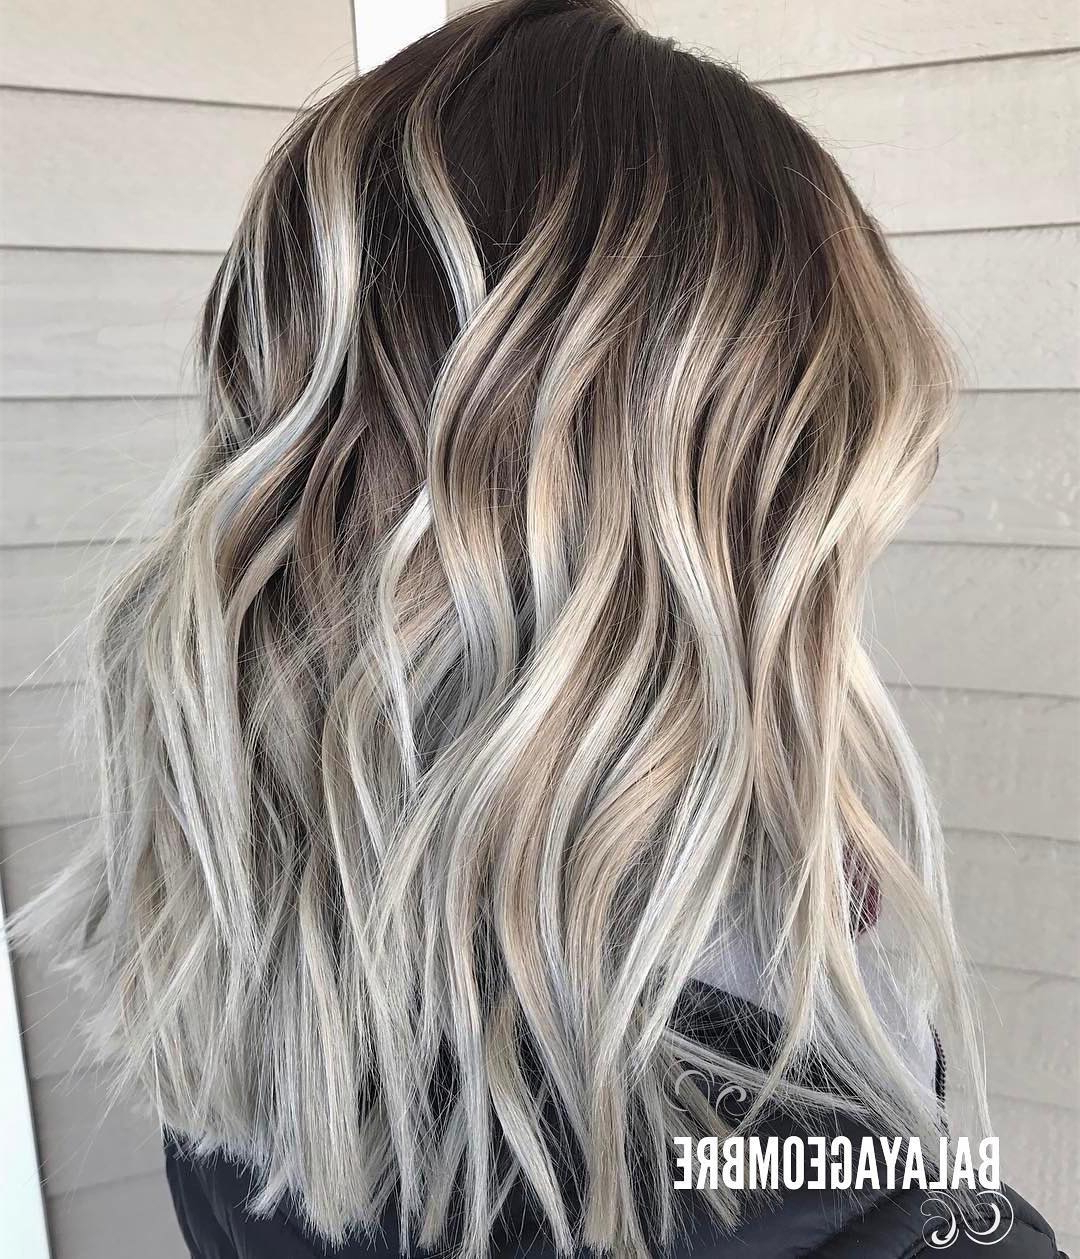 Preferred Choppy Medium Hairstyles For Thick Hair Throughout 10 Best Medium Layered Hairstyles 2019 – Brown & Ash Blonde Fashion (View 17 of 20)